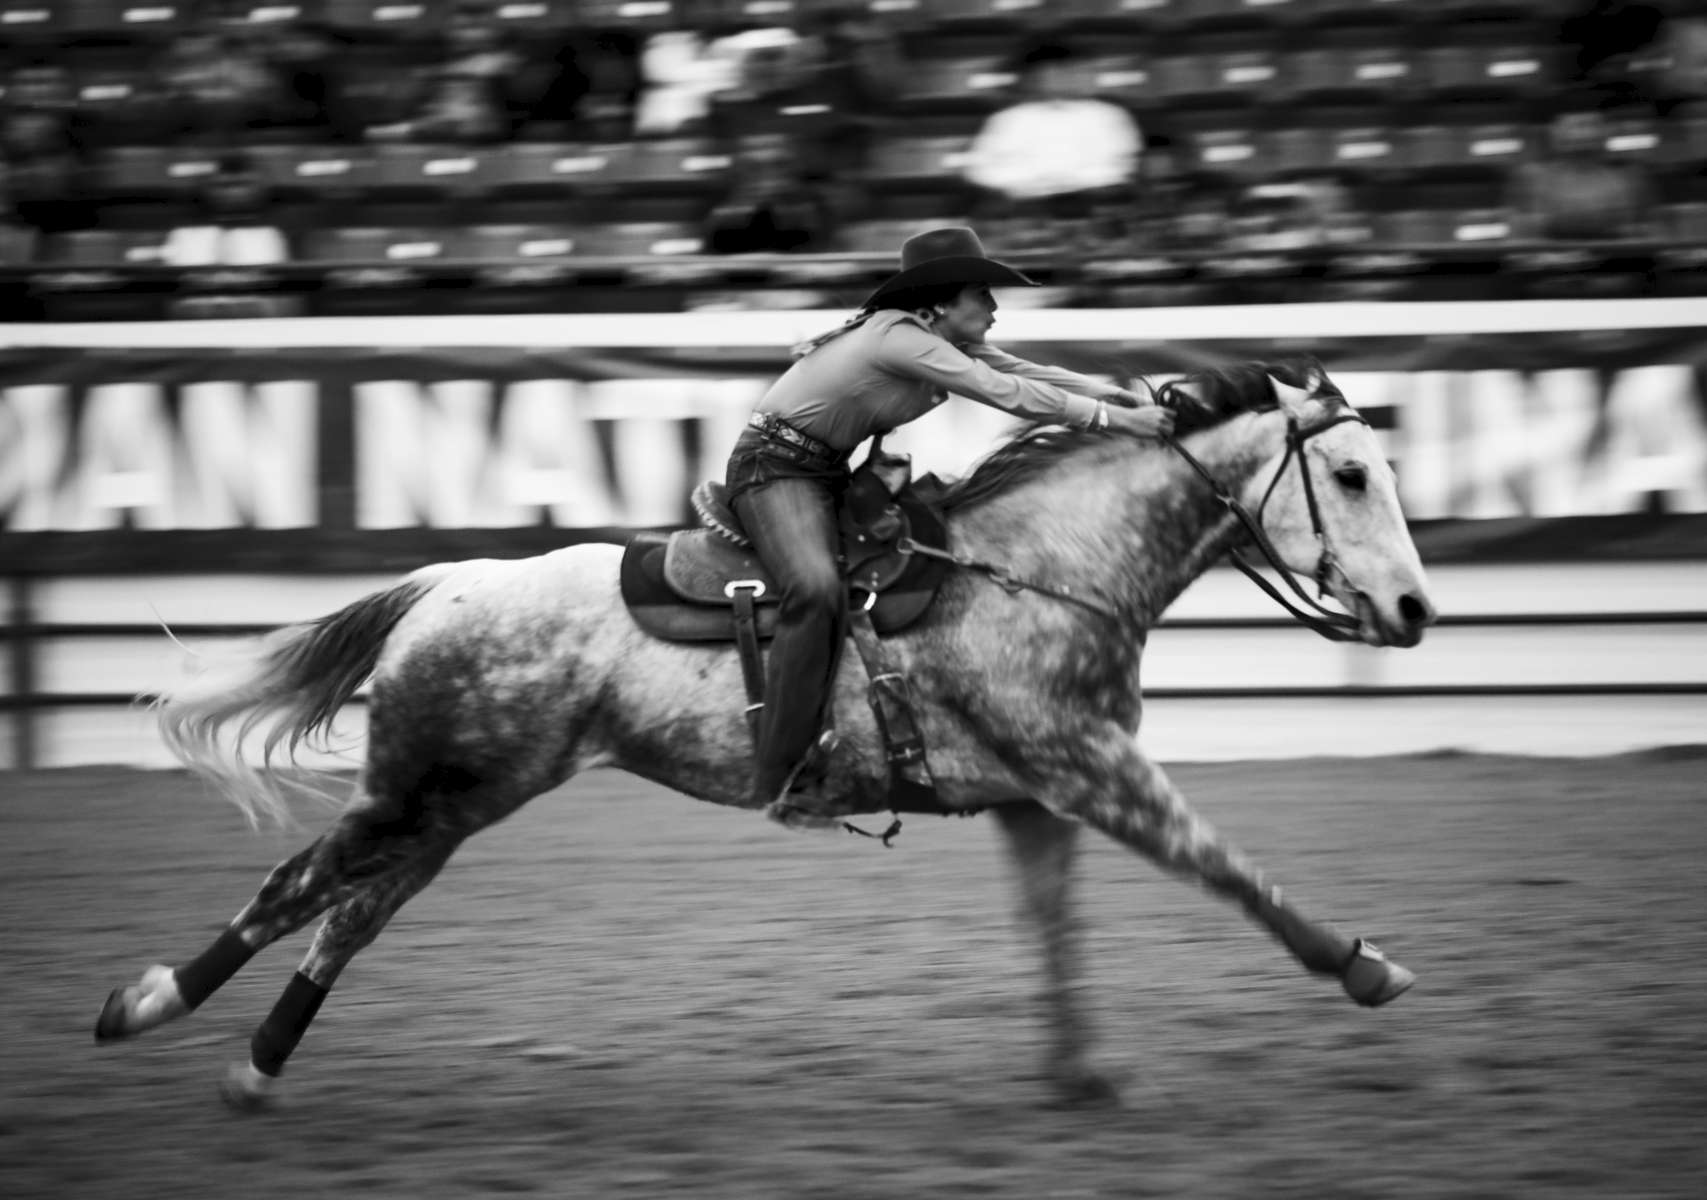 Janae Devine  participates in the Junior Barrel Racing during the Indian National Finals Rodeo, on October 25, 2019 in Las Vegas, Nevada.